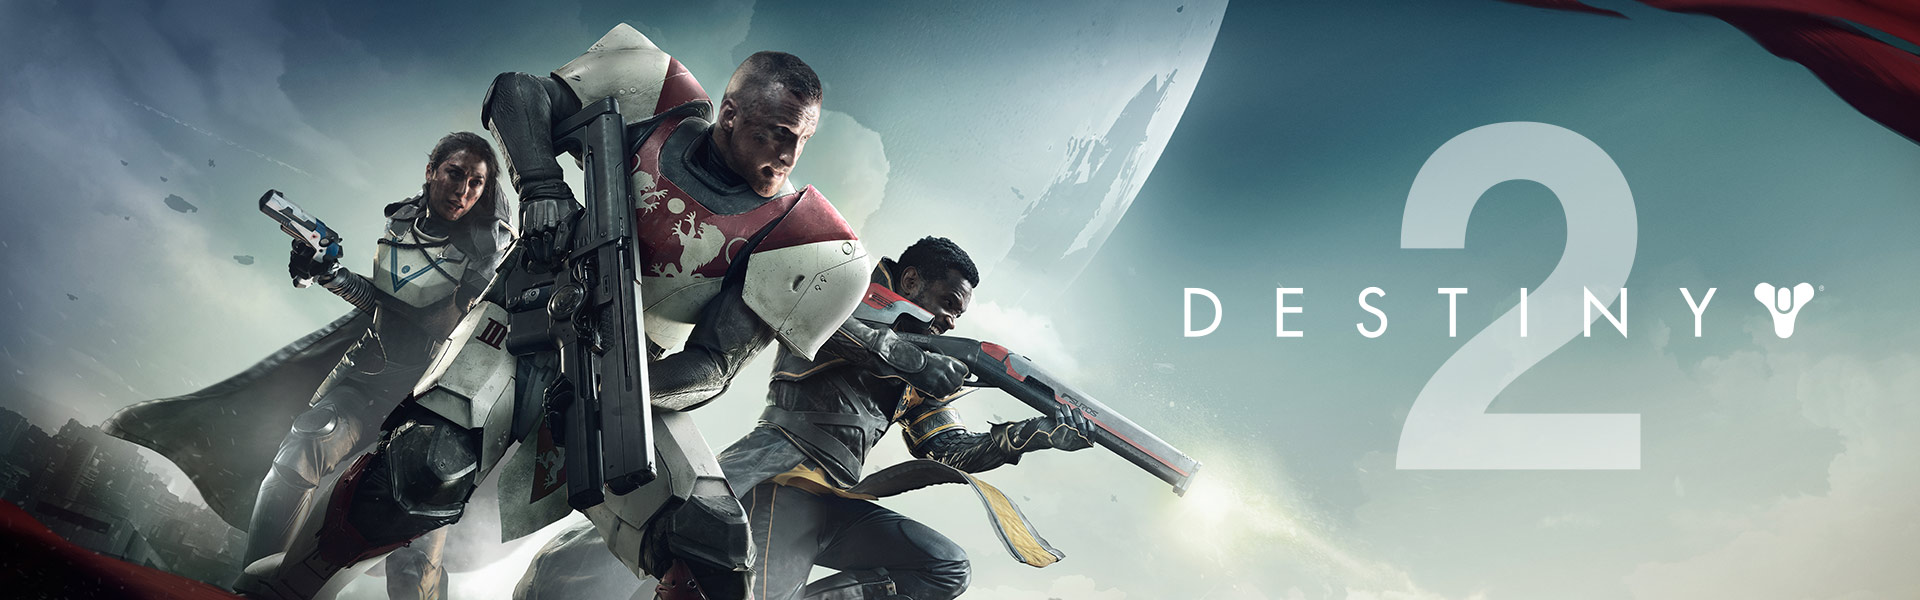 Destiny 2, three guardians stand on the tower holding guns